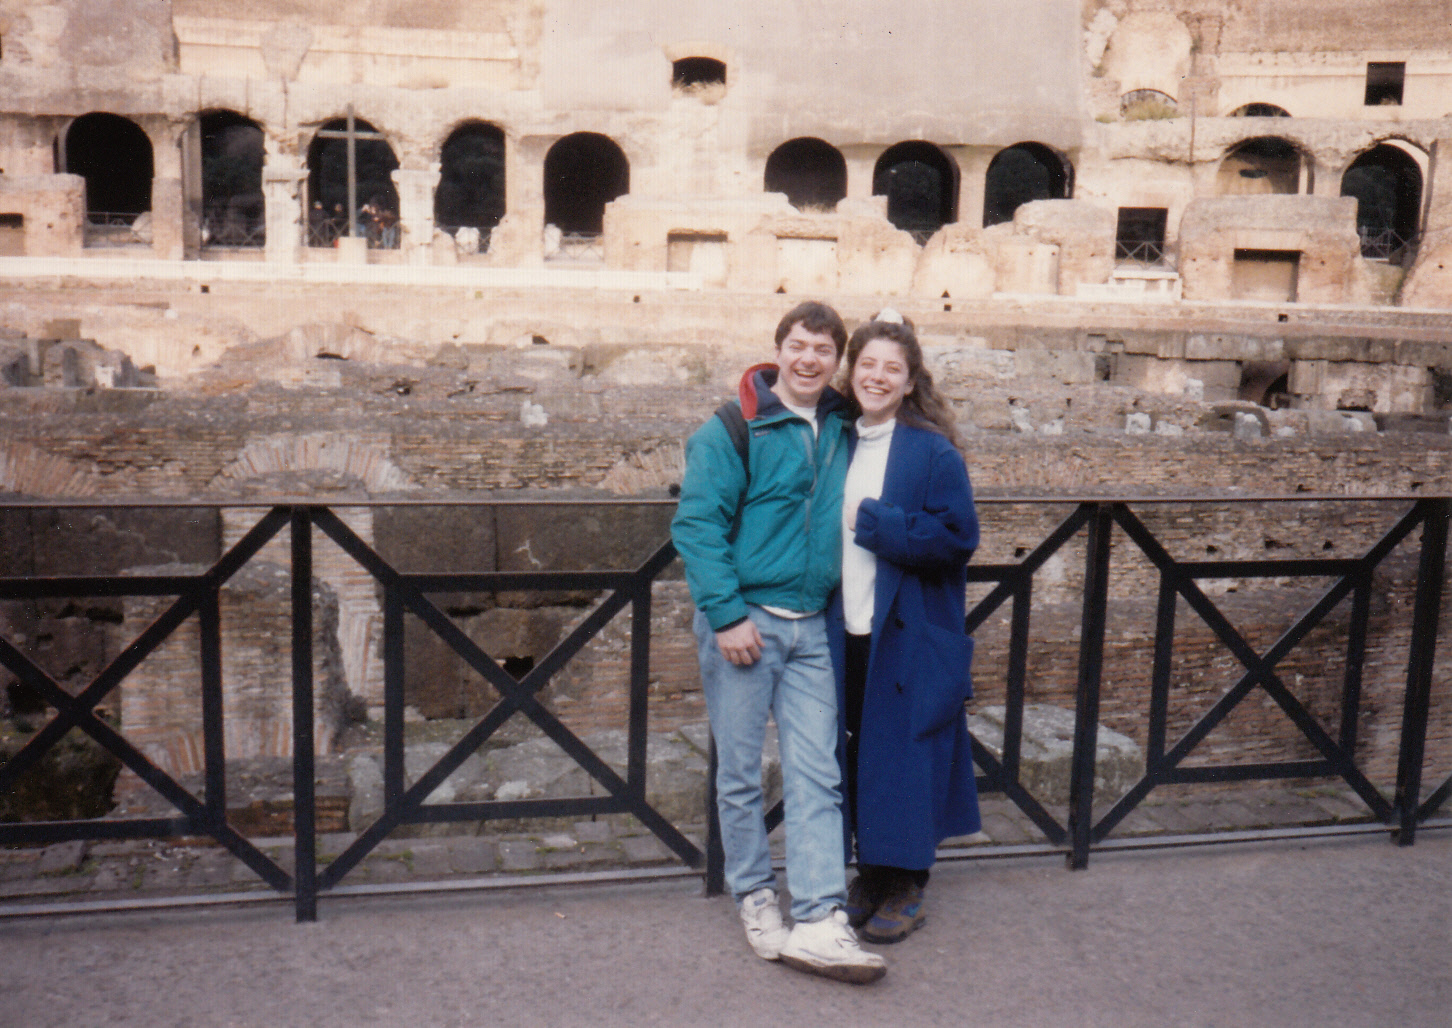 Dan Fantasia and his HS sweetheart and wife in Rome